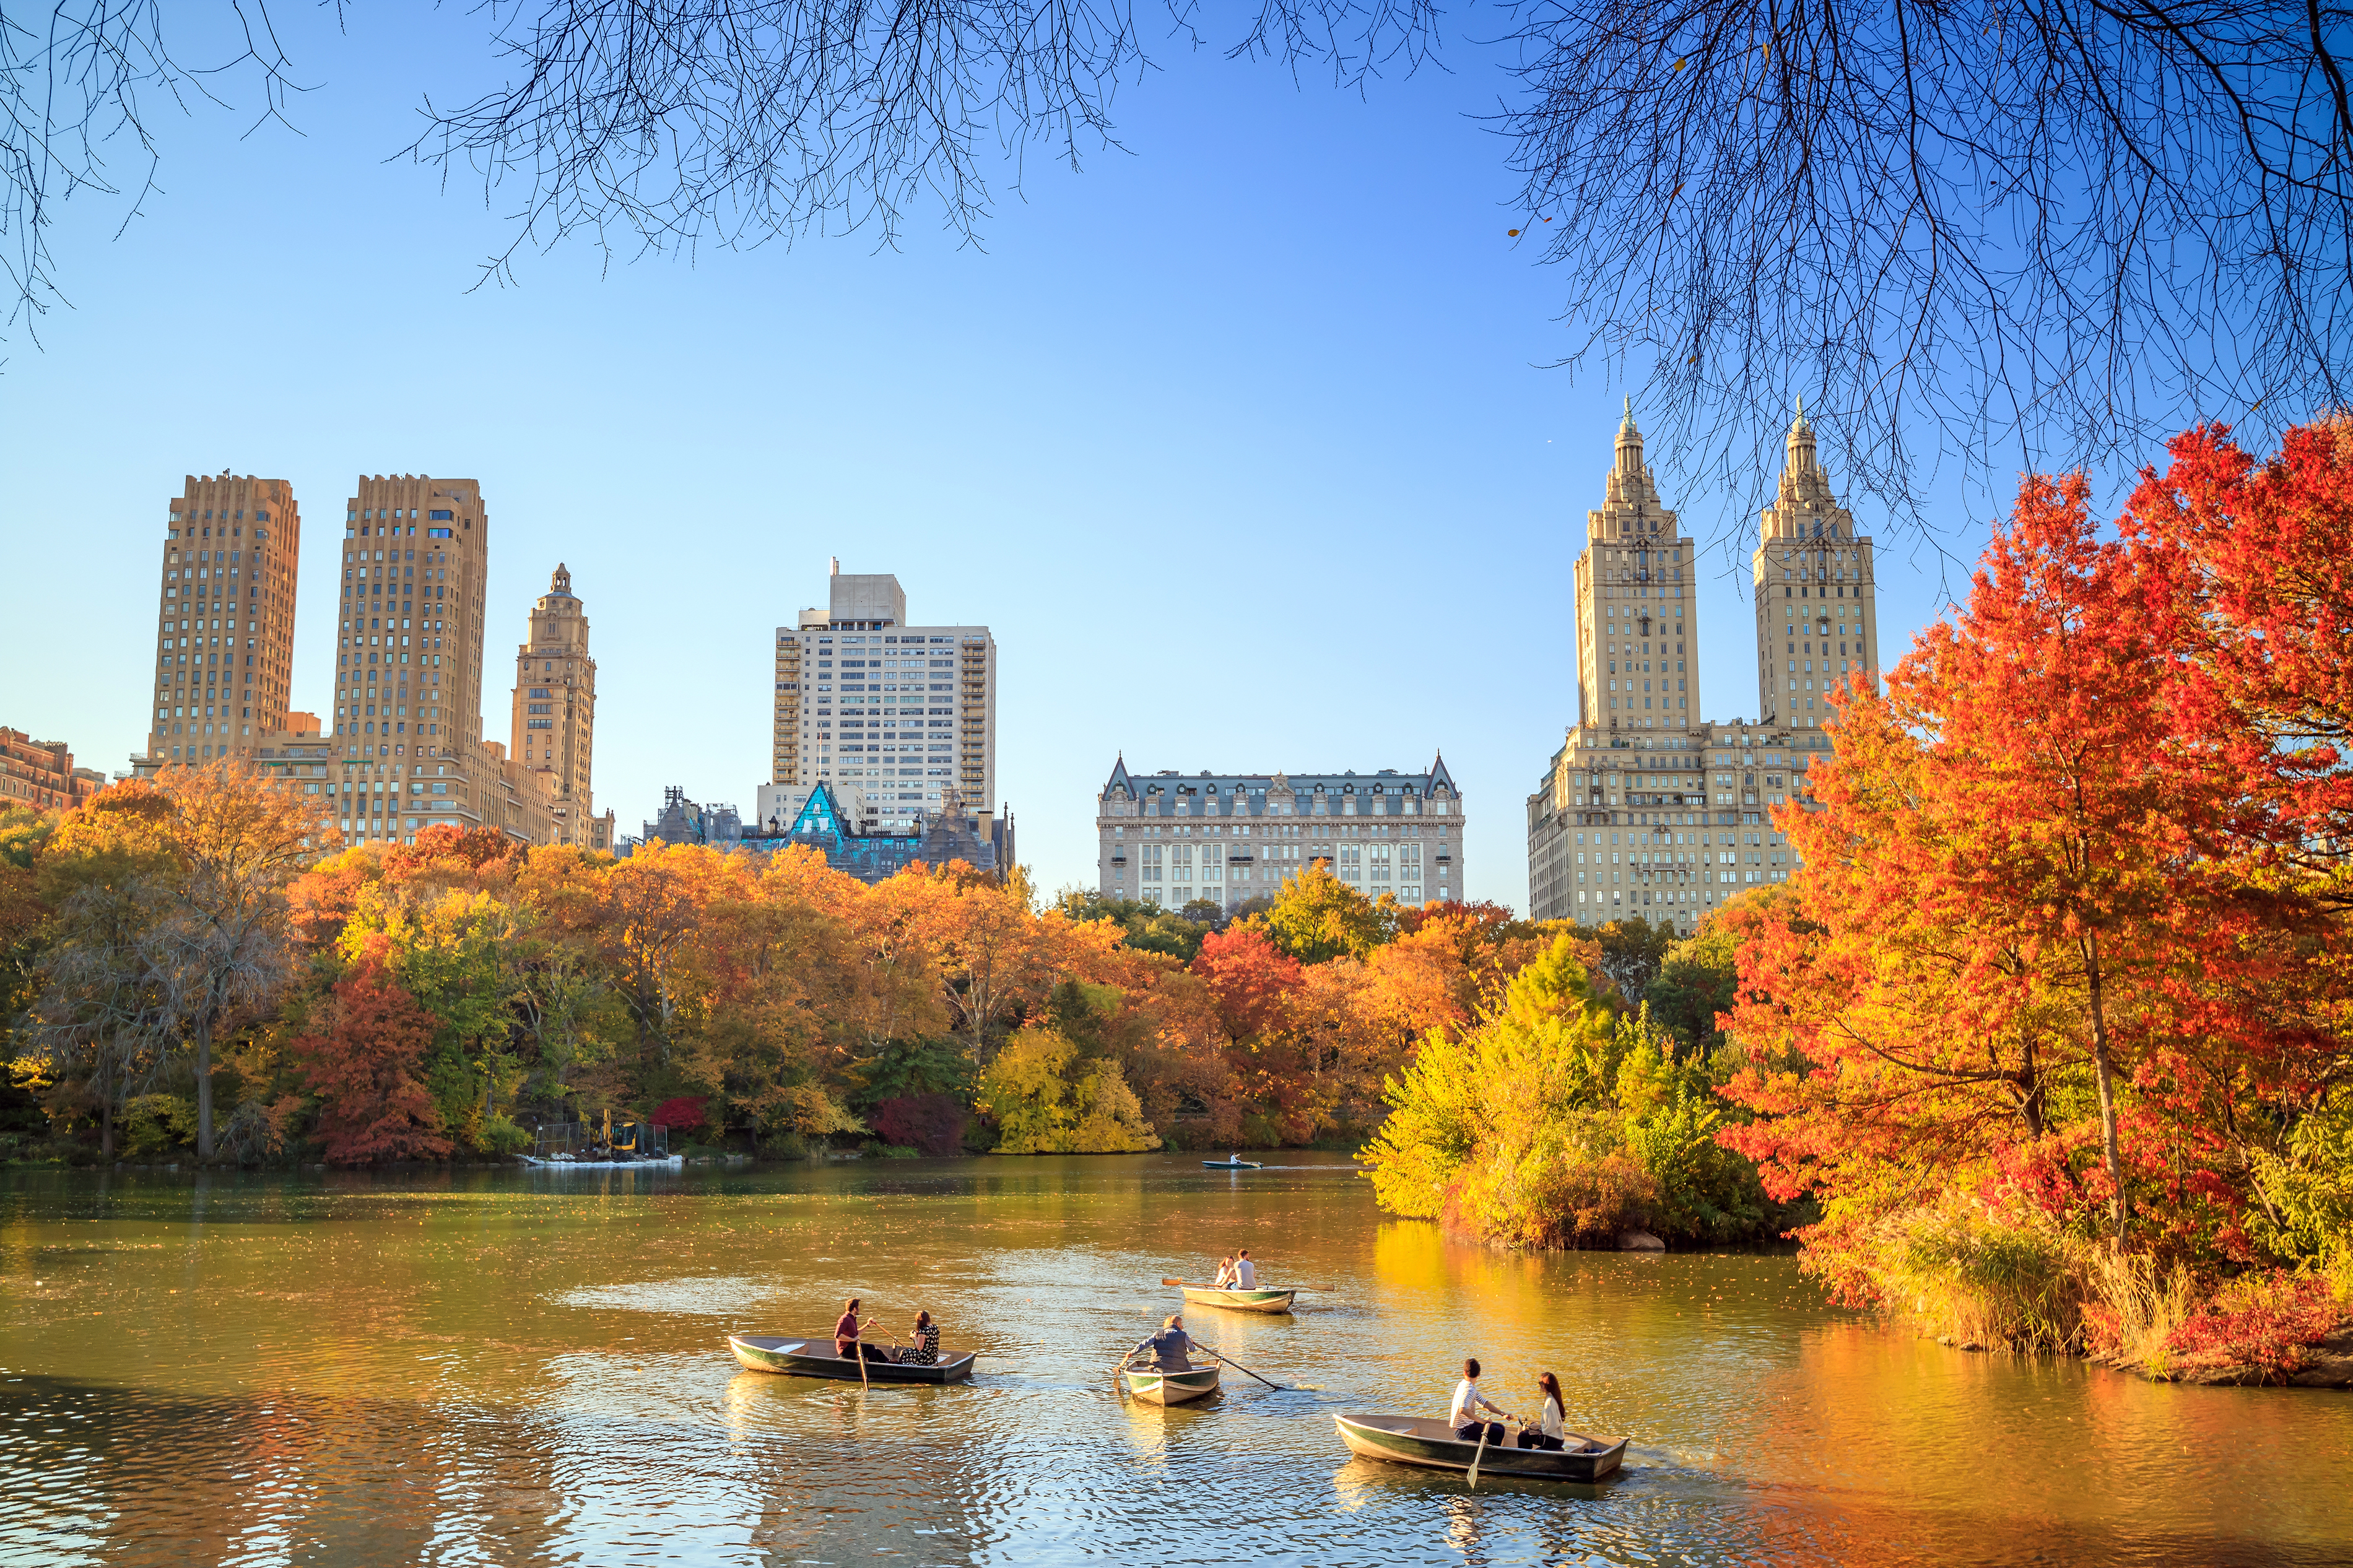 In the foreground is Central Park Lake. There are people in row boats on the lake. The lake is surrounded by trees with colorful Autumn leaves. In the distance are tall city buildings.